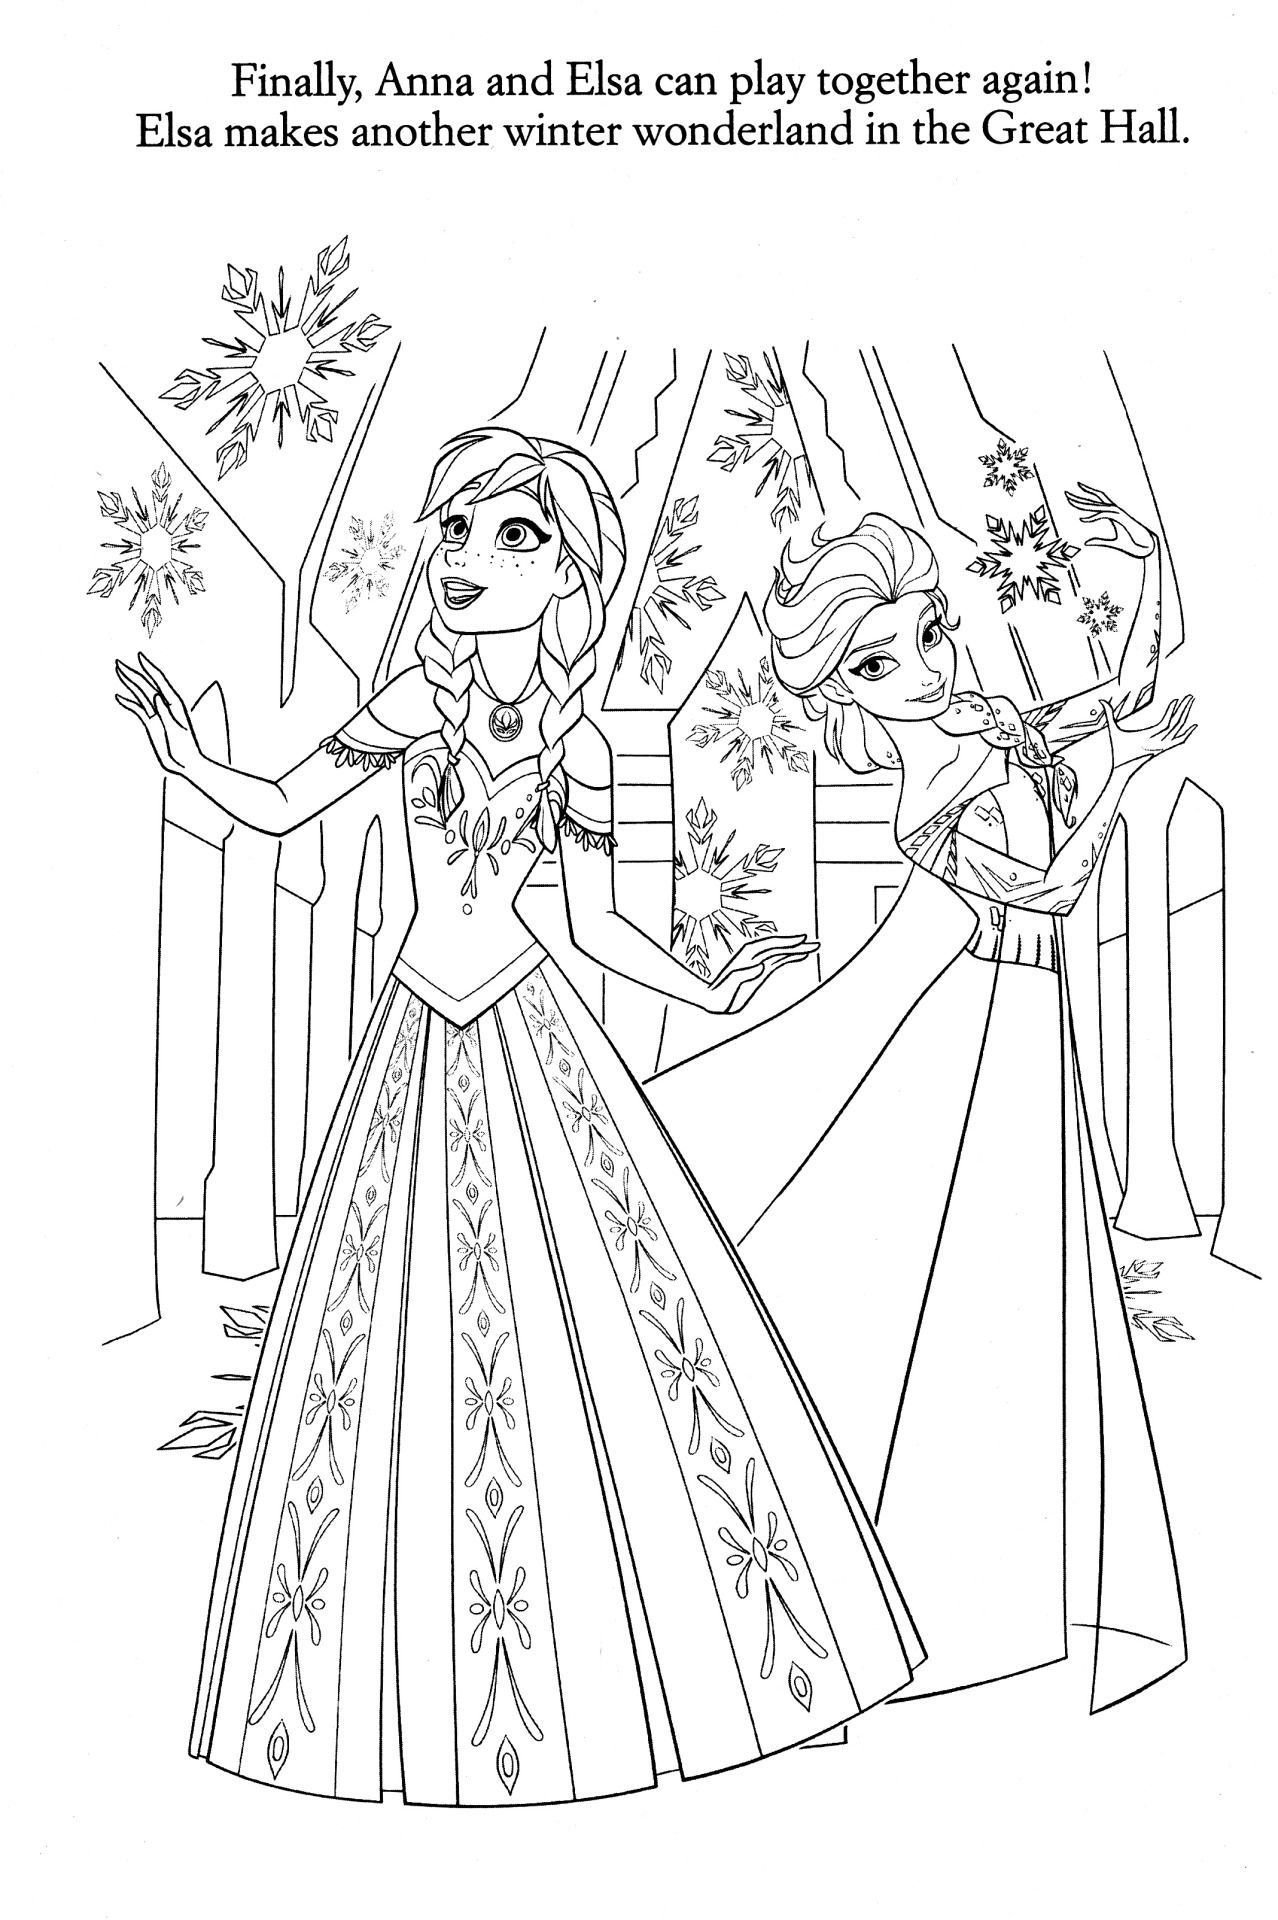 30 Free Frozen Colouring Pages Elsa Coloring Pages Disney Princess Coloring Pages Princess Coloring Pages [ jpg ]